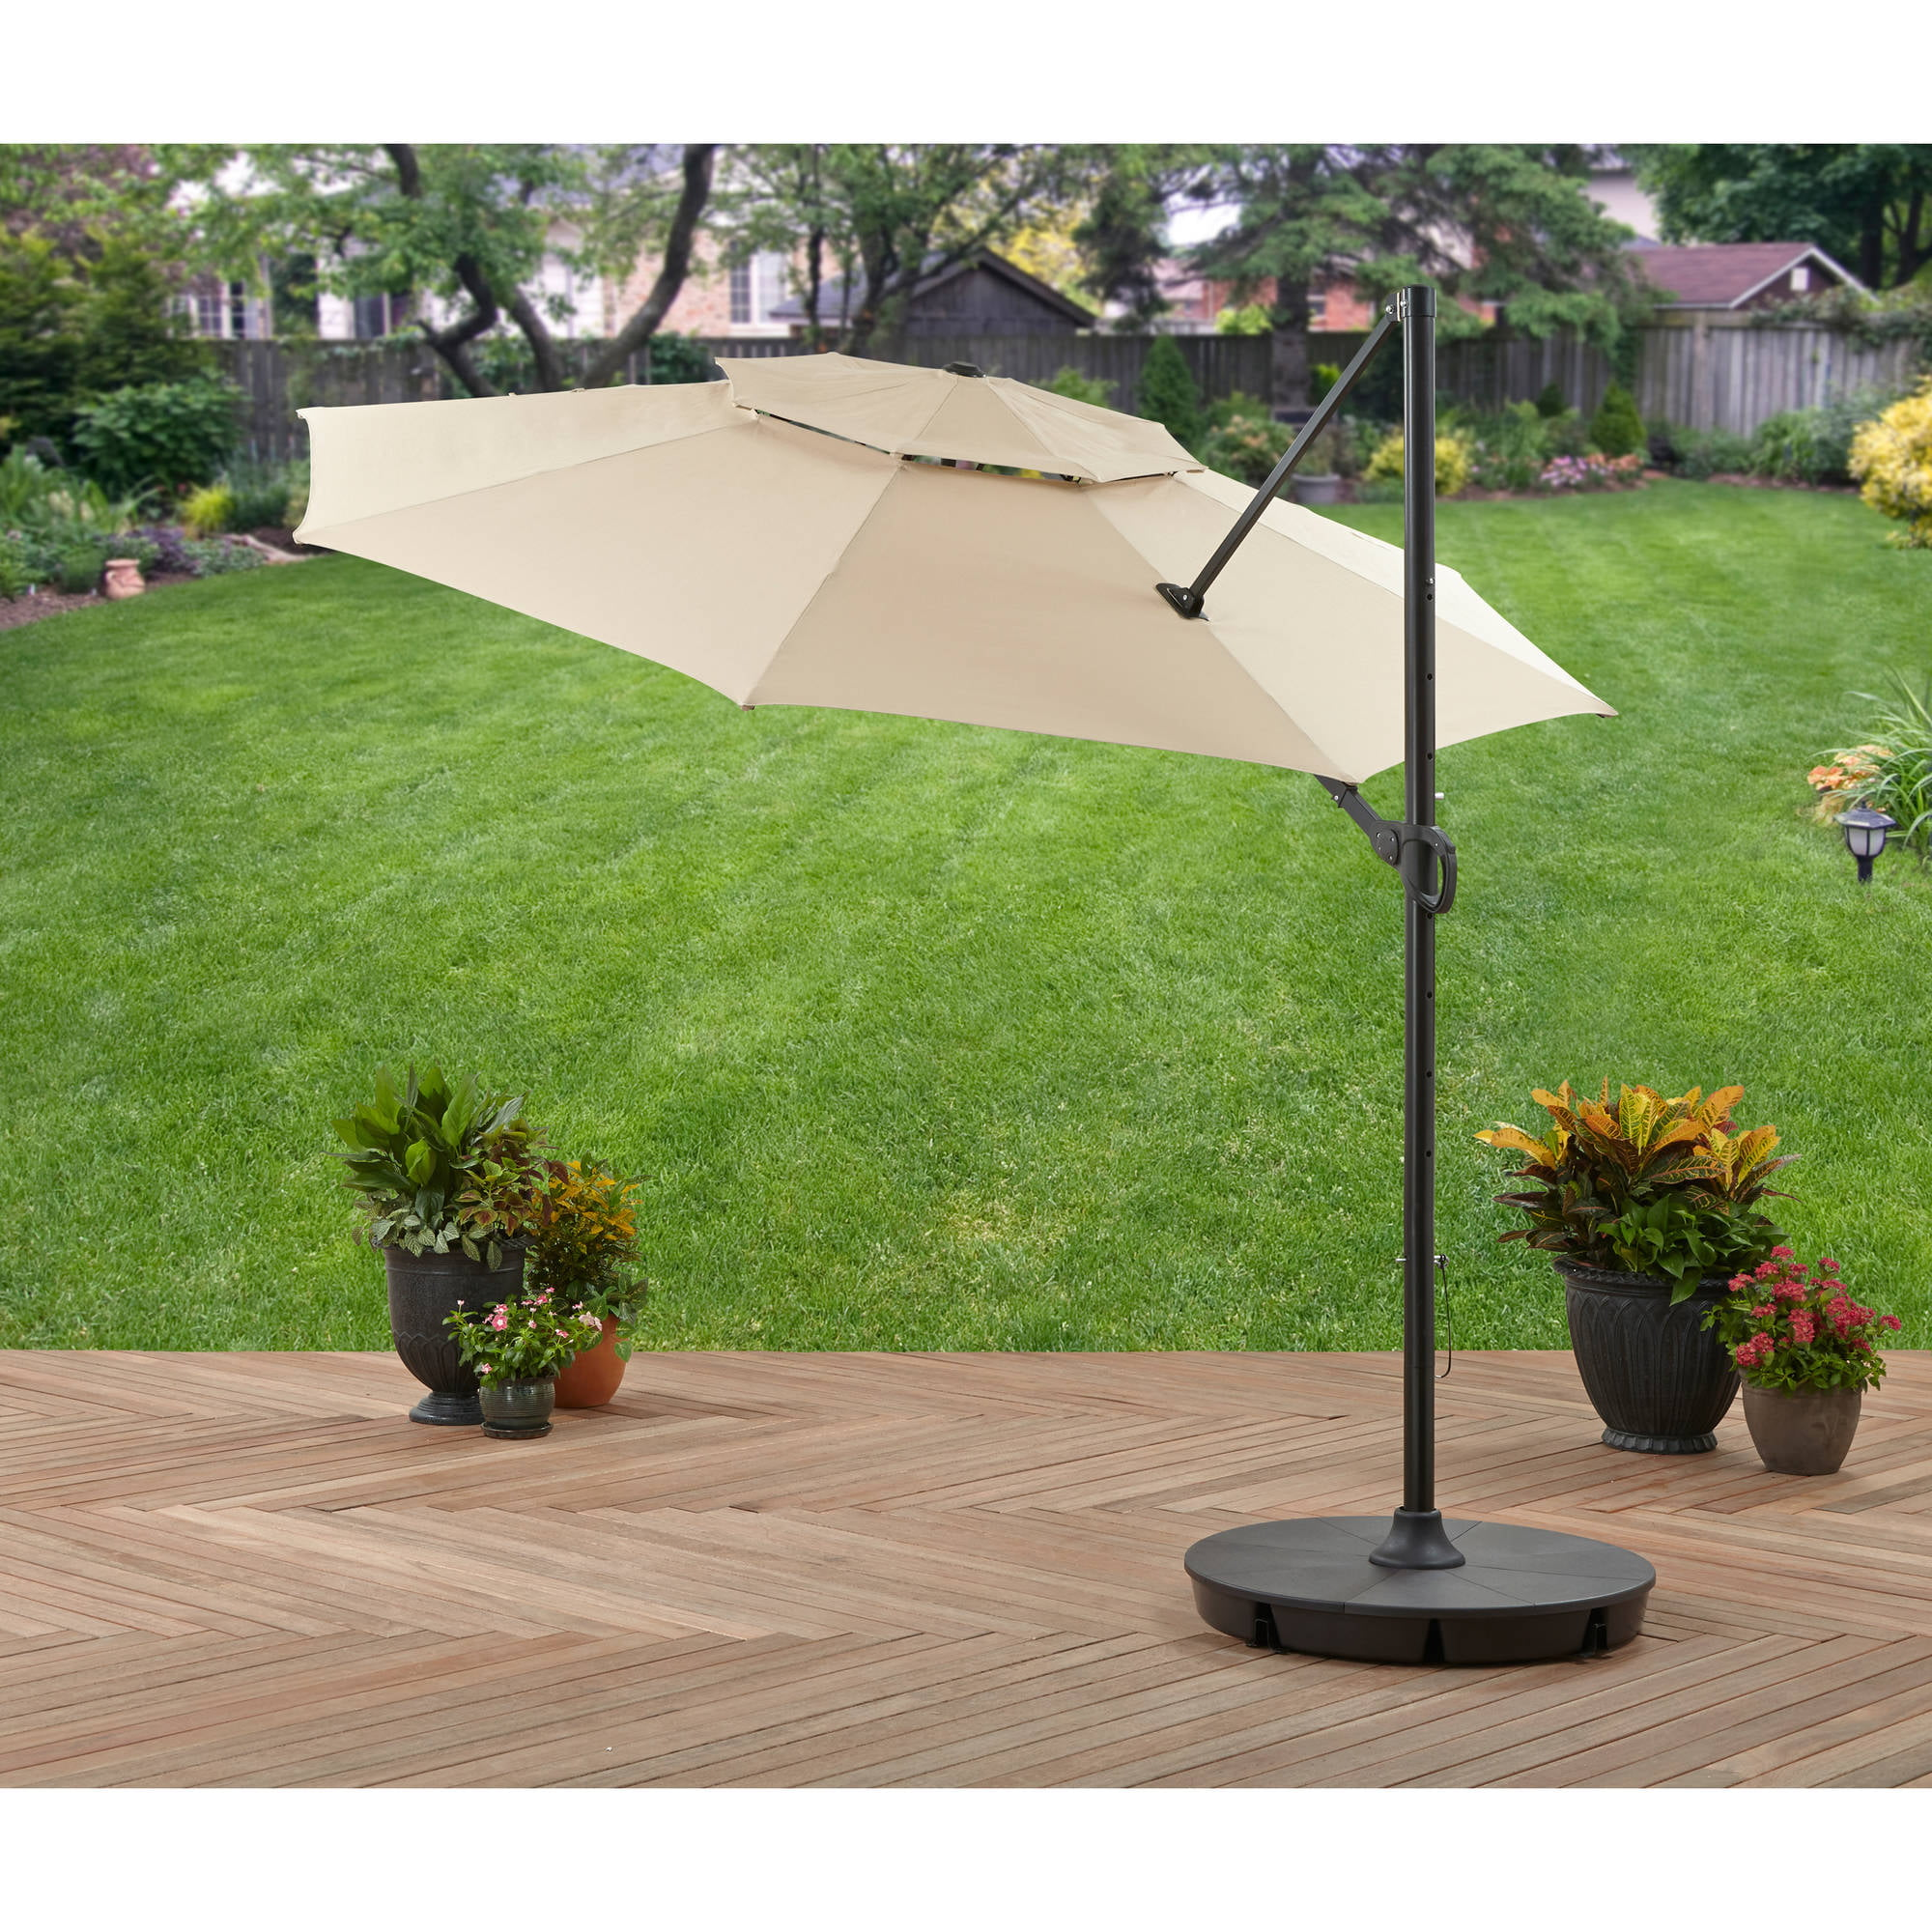 Better Homes and Gardens 9\' Market Umbrella, Red - Walmart.com